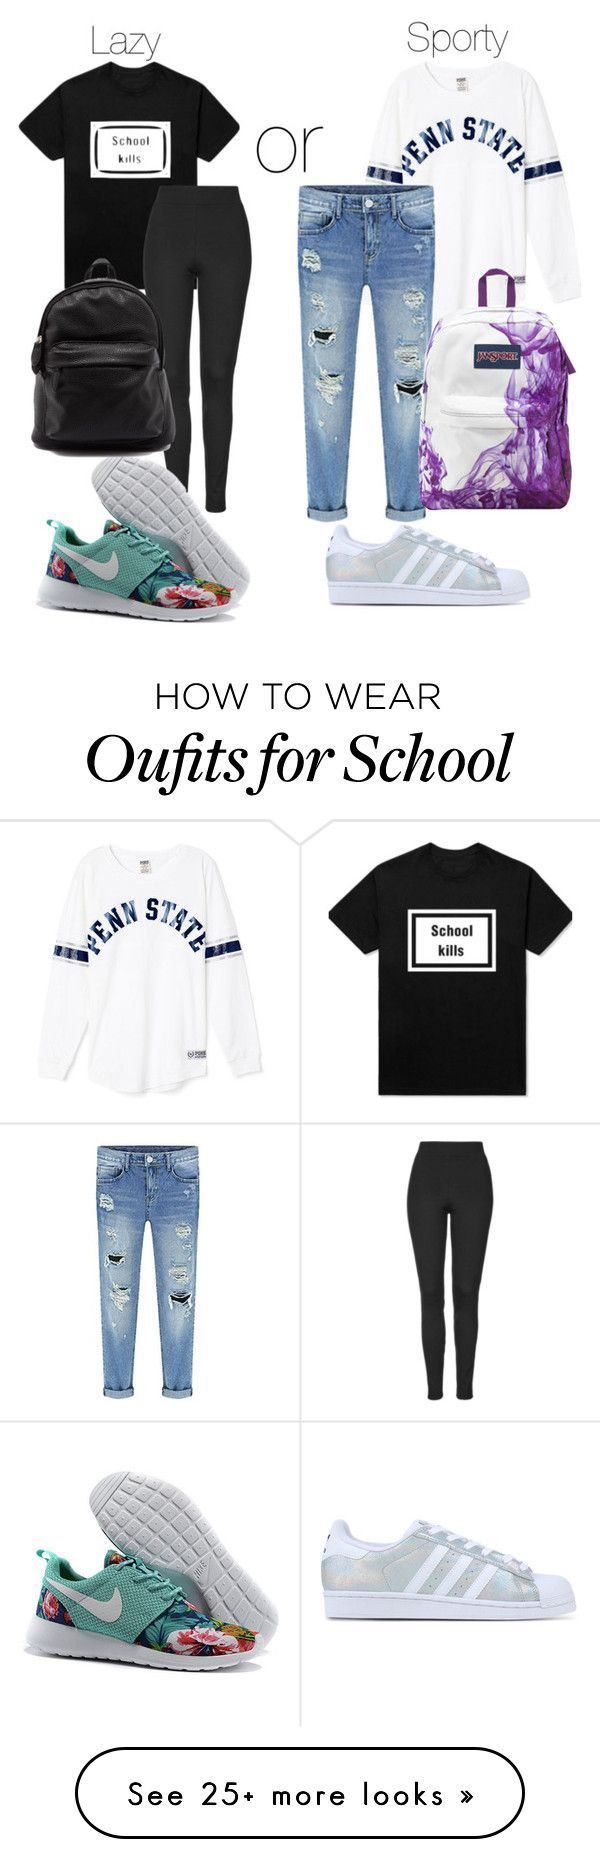 """""""First day of school Part 1 Sunny days"""" by jordangirl2313 on Polyvore featuring Topshop, adidas Originals, JanSport, women's clothing, women's fashion, women, female, woman, misses and juniors"""